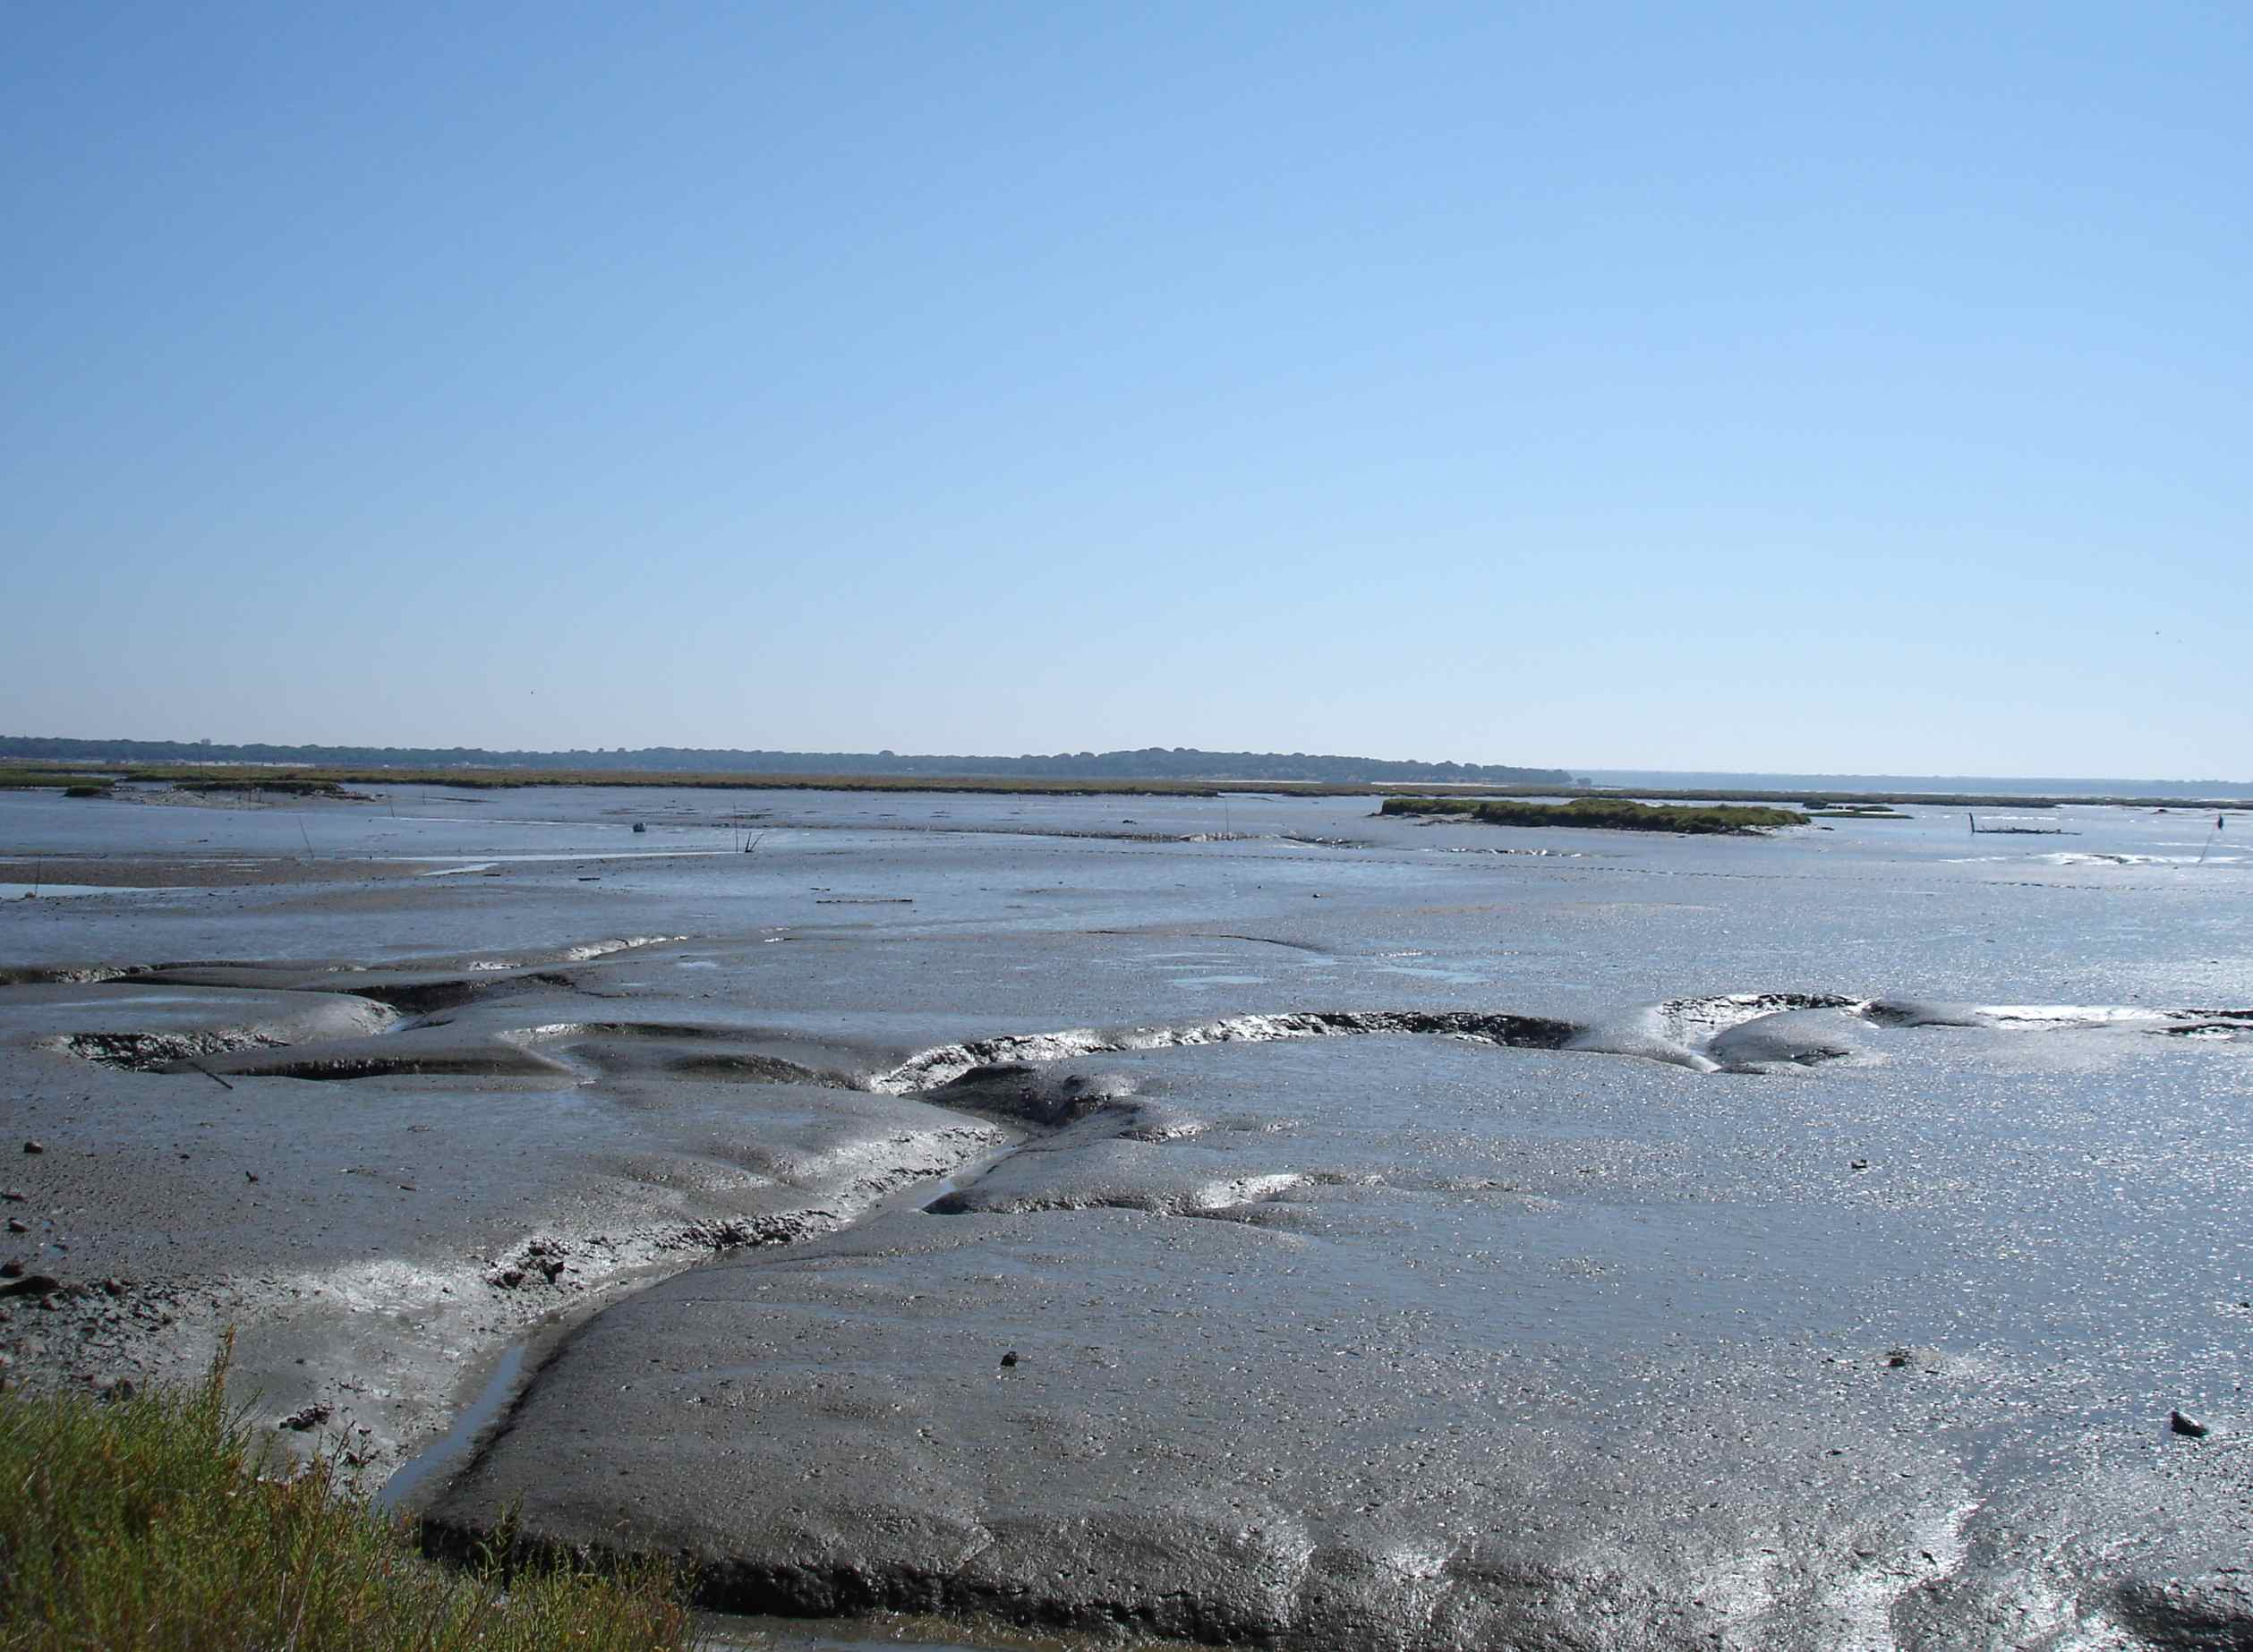 Figure 112 - Present day mud flats rich in burrowing animals (Sado River Estuary, Portugal).